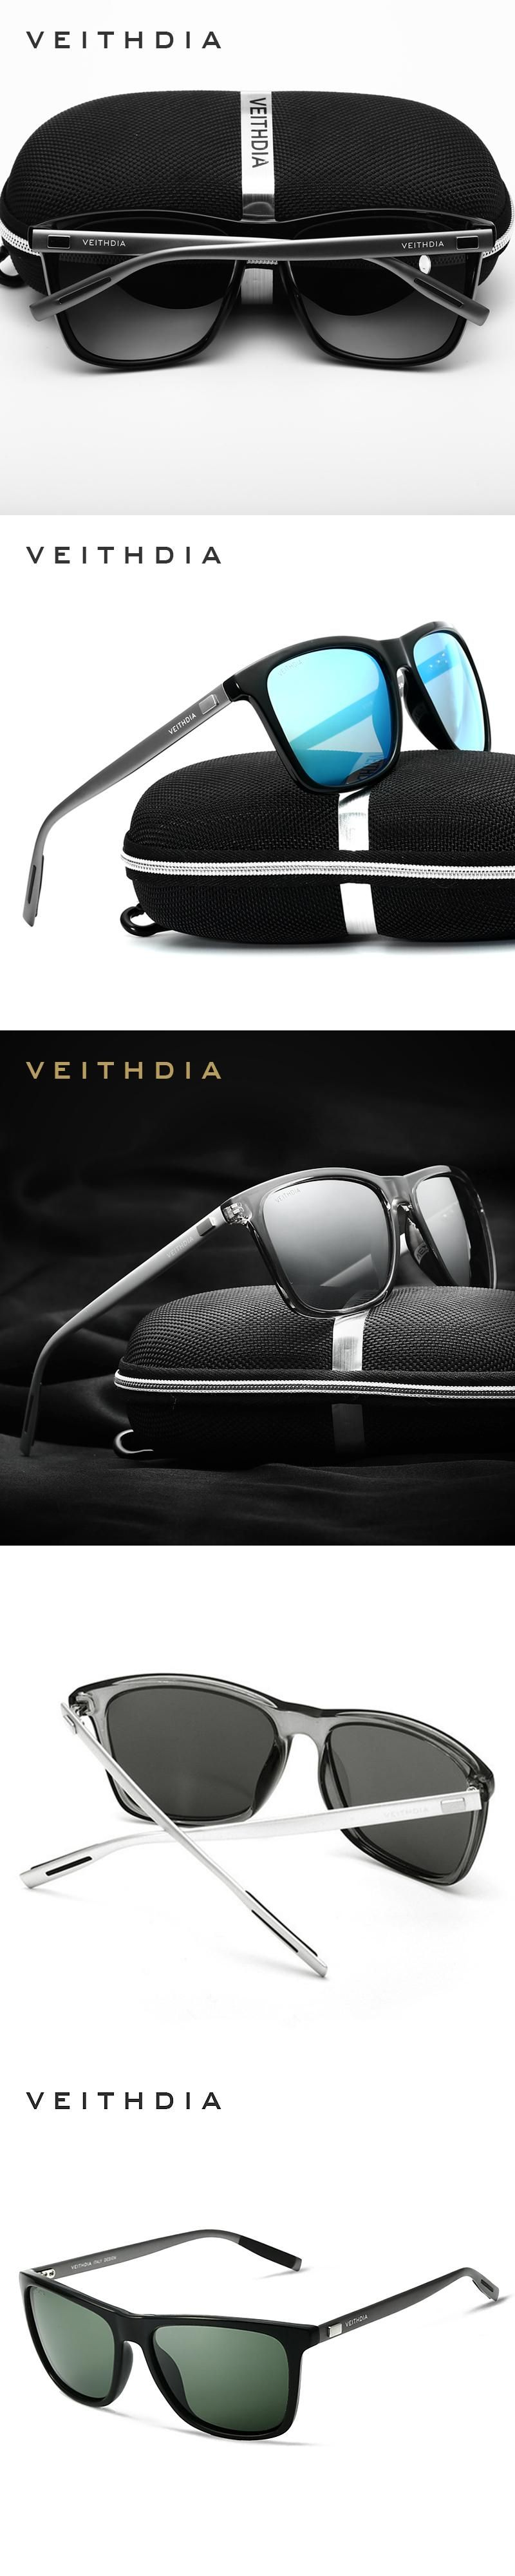 bc7b924b85 VEITHDIA Brand Retro Aluminum Sunglasses Unisex Polarized Lens Vintage  Eyewear Accessories Sun Glasses For Men Women 6108